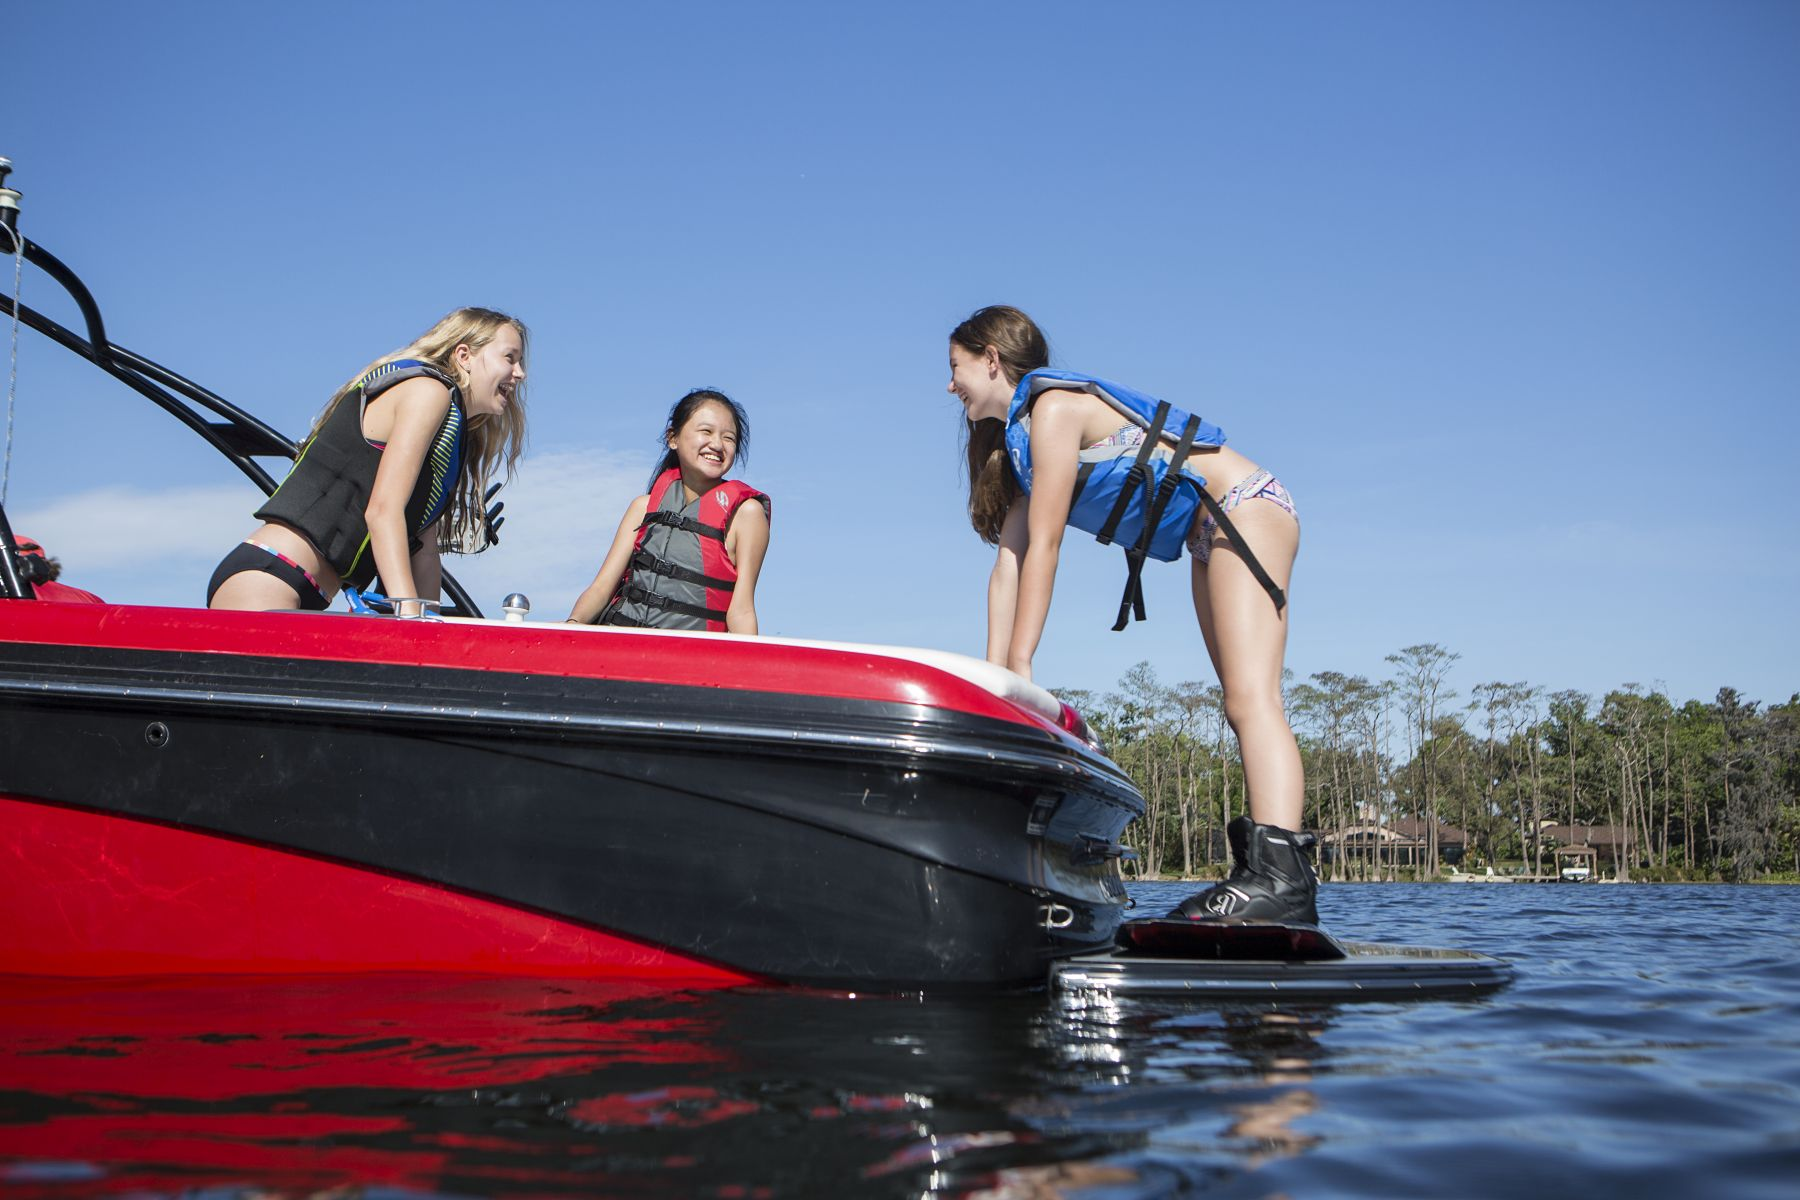 Kids having fun on the water in properly fitting life jackets.